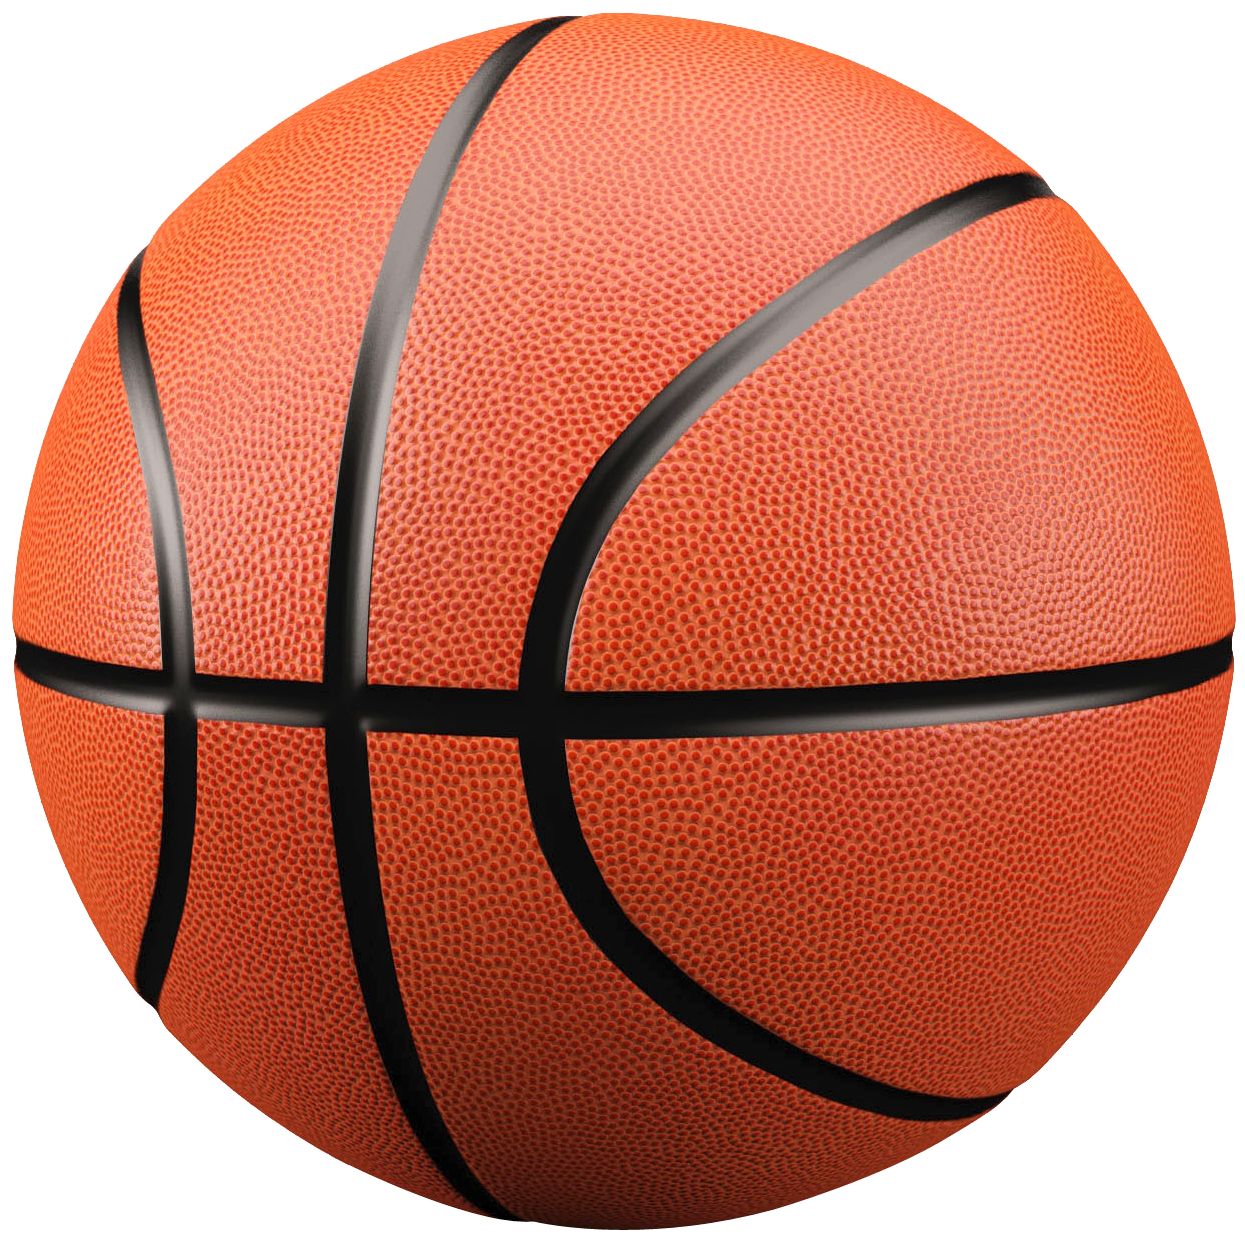 Basketball Png Hd PNG Image - Basketball Net PNG HD